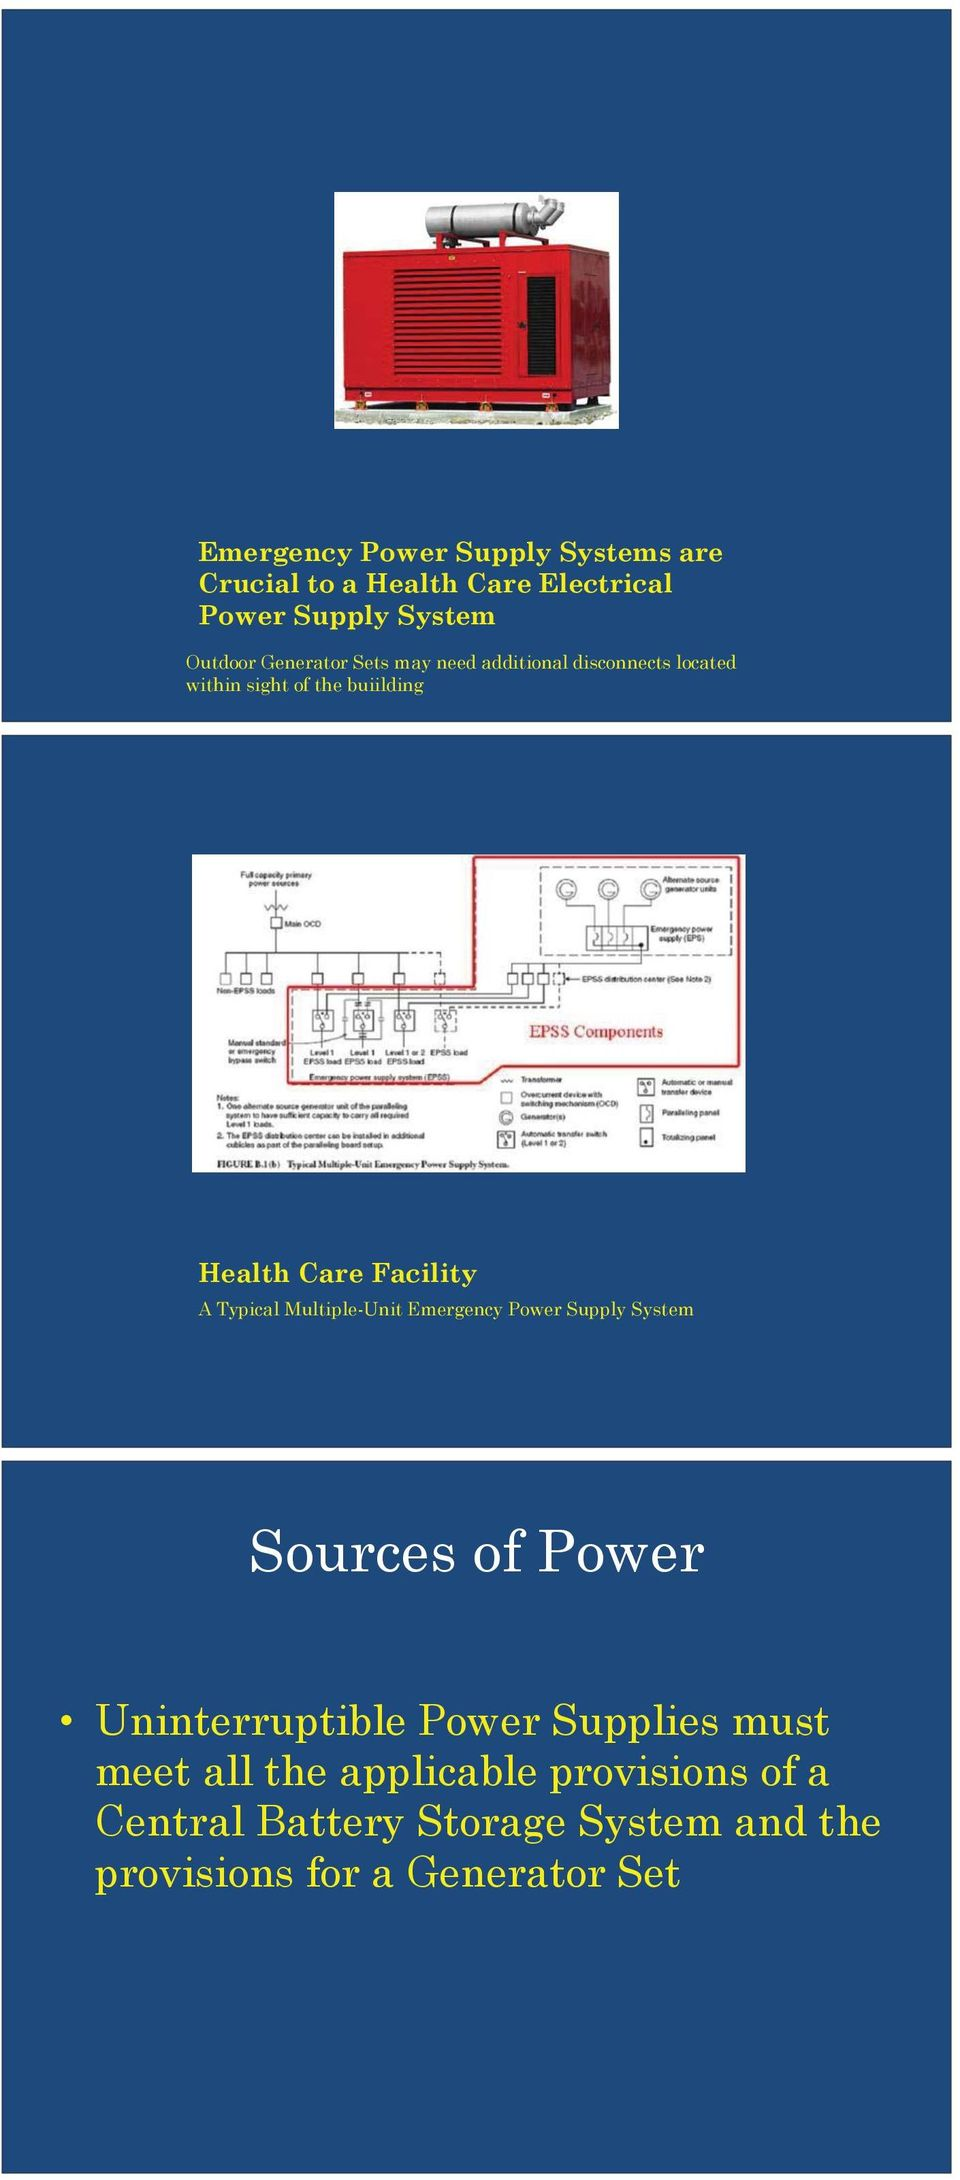 A Typical Multiple-Unit Emergency Power Supply System Sources of Power Uninterruptible Power Supplies